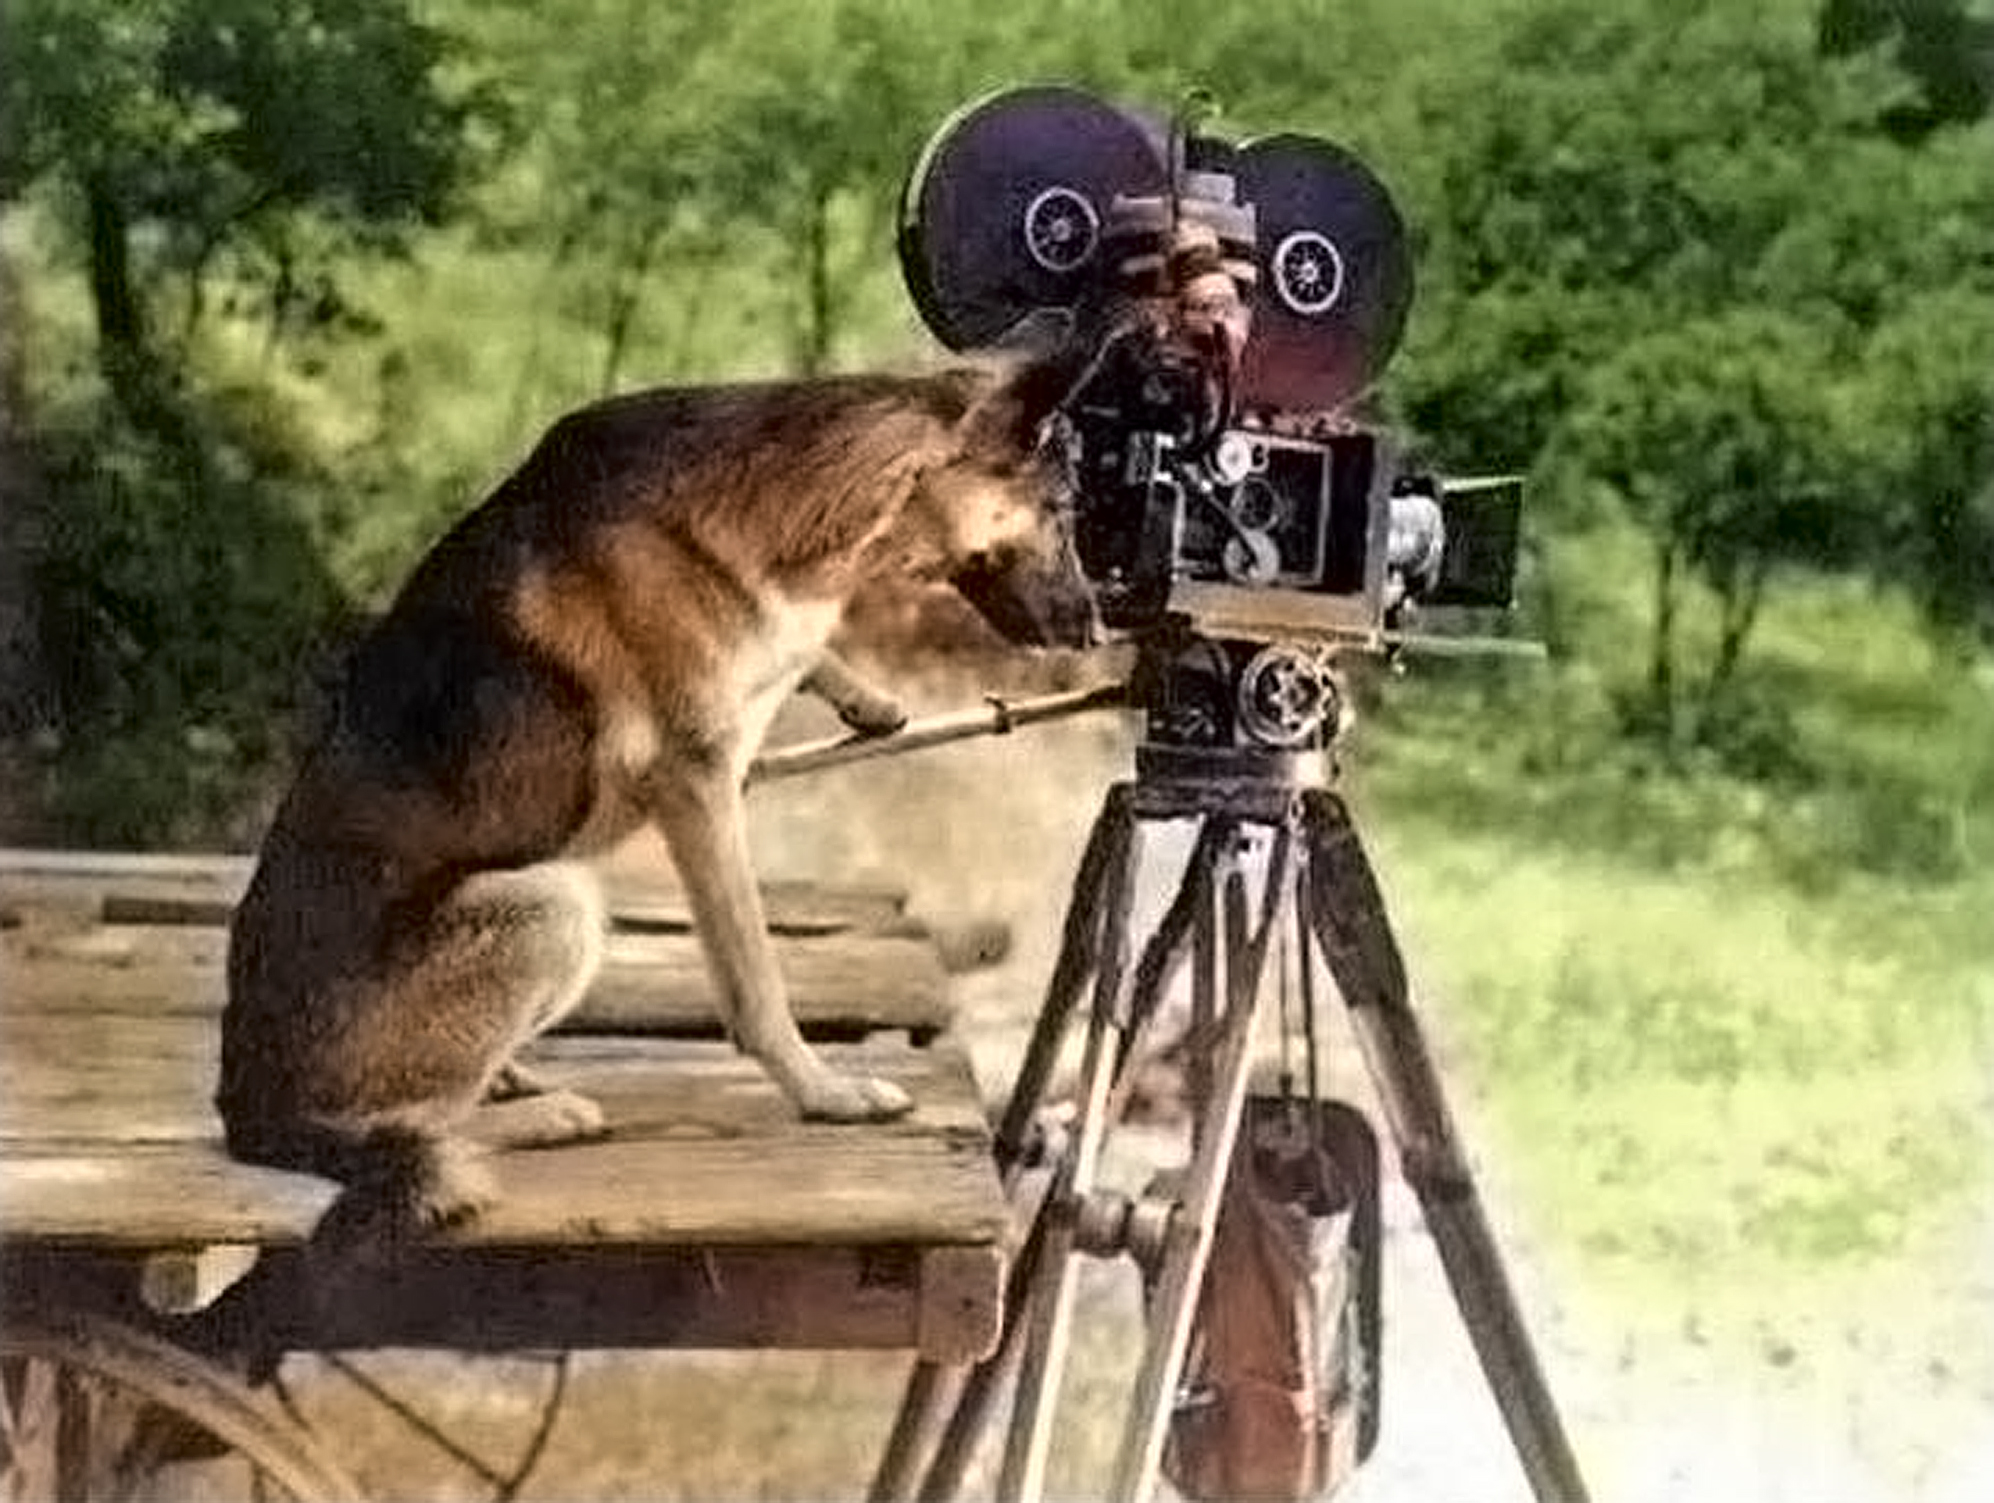 Rin Tin Tin at the Camera Color Final